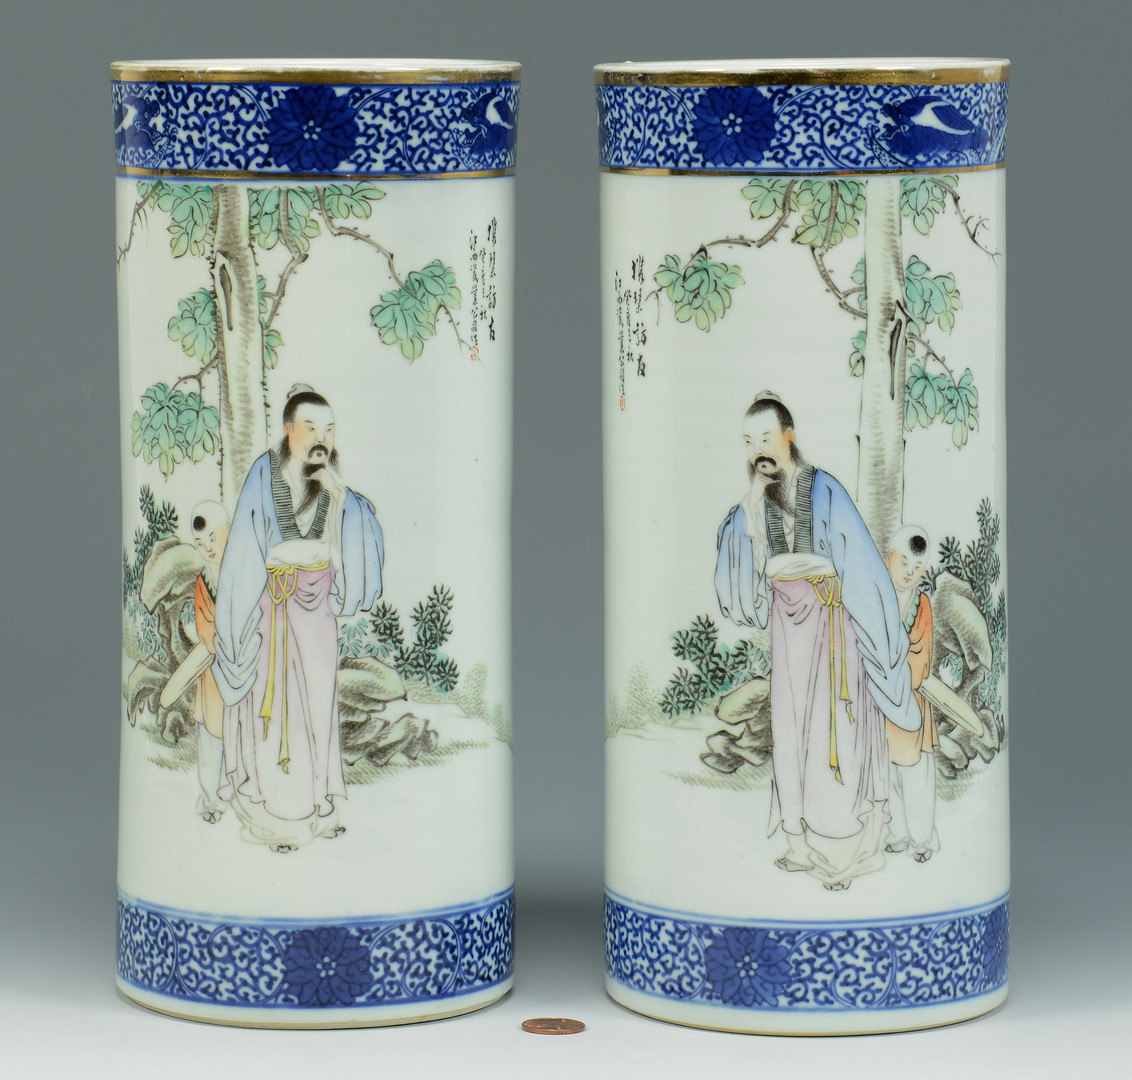 Lot 495: Pair of Chinese Poem Hat Stands